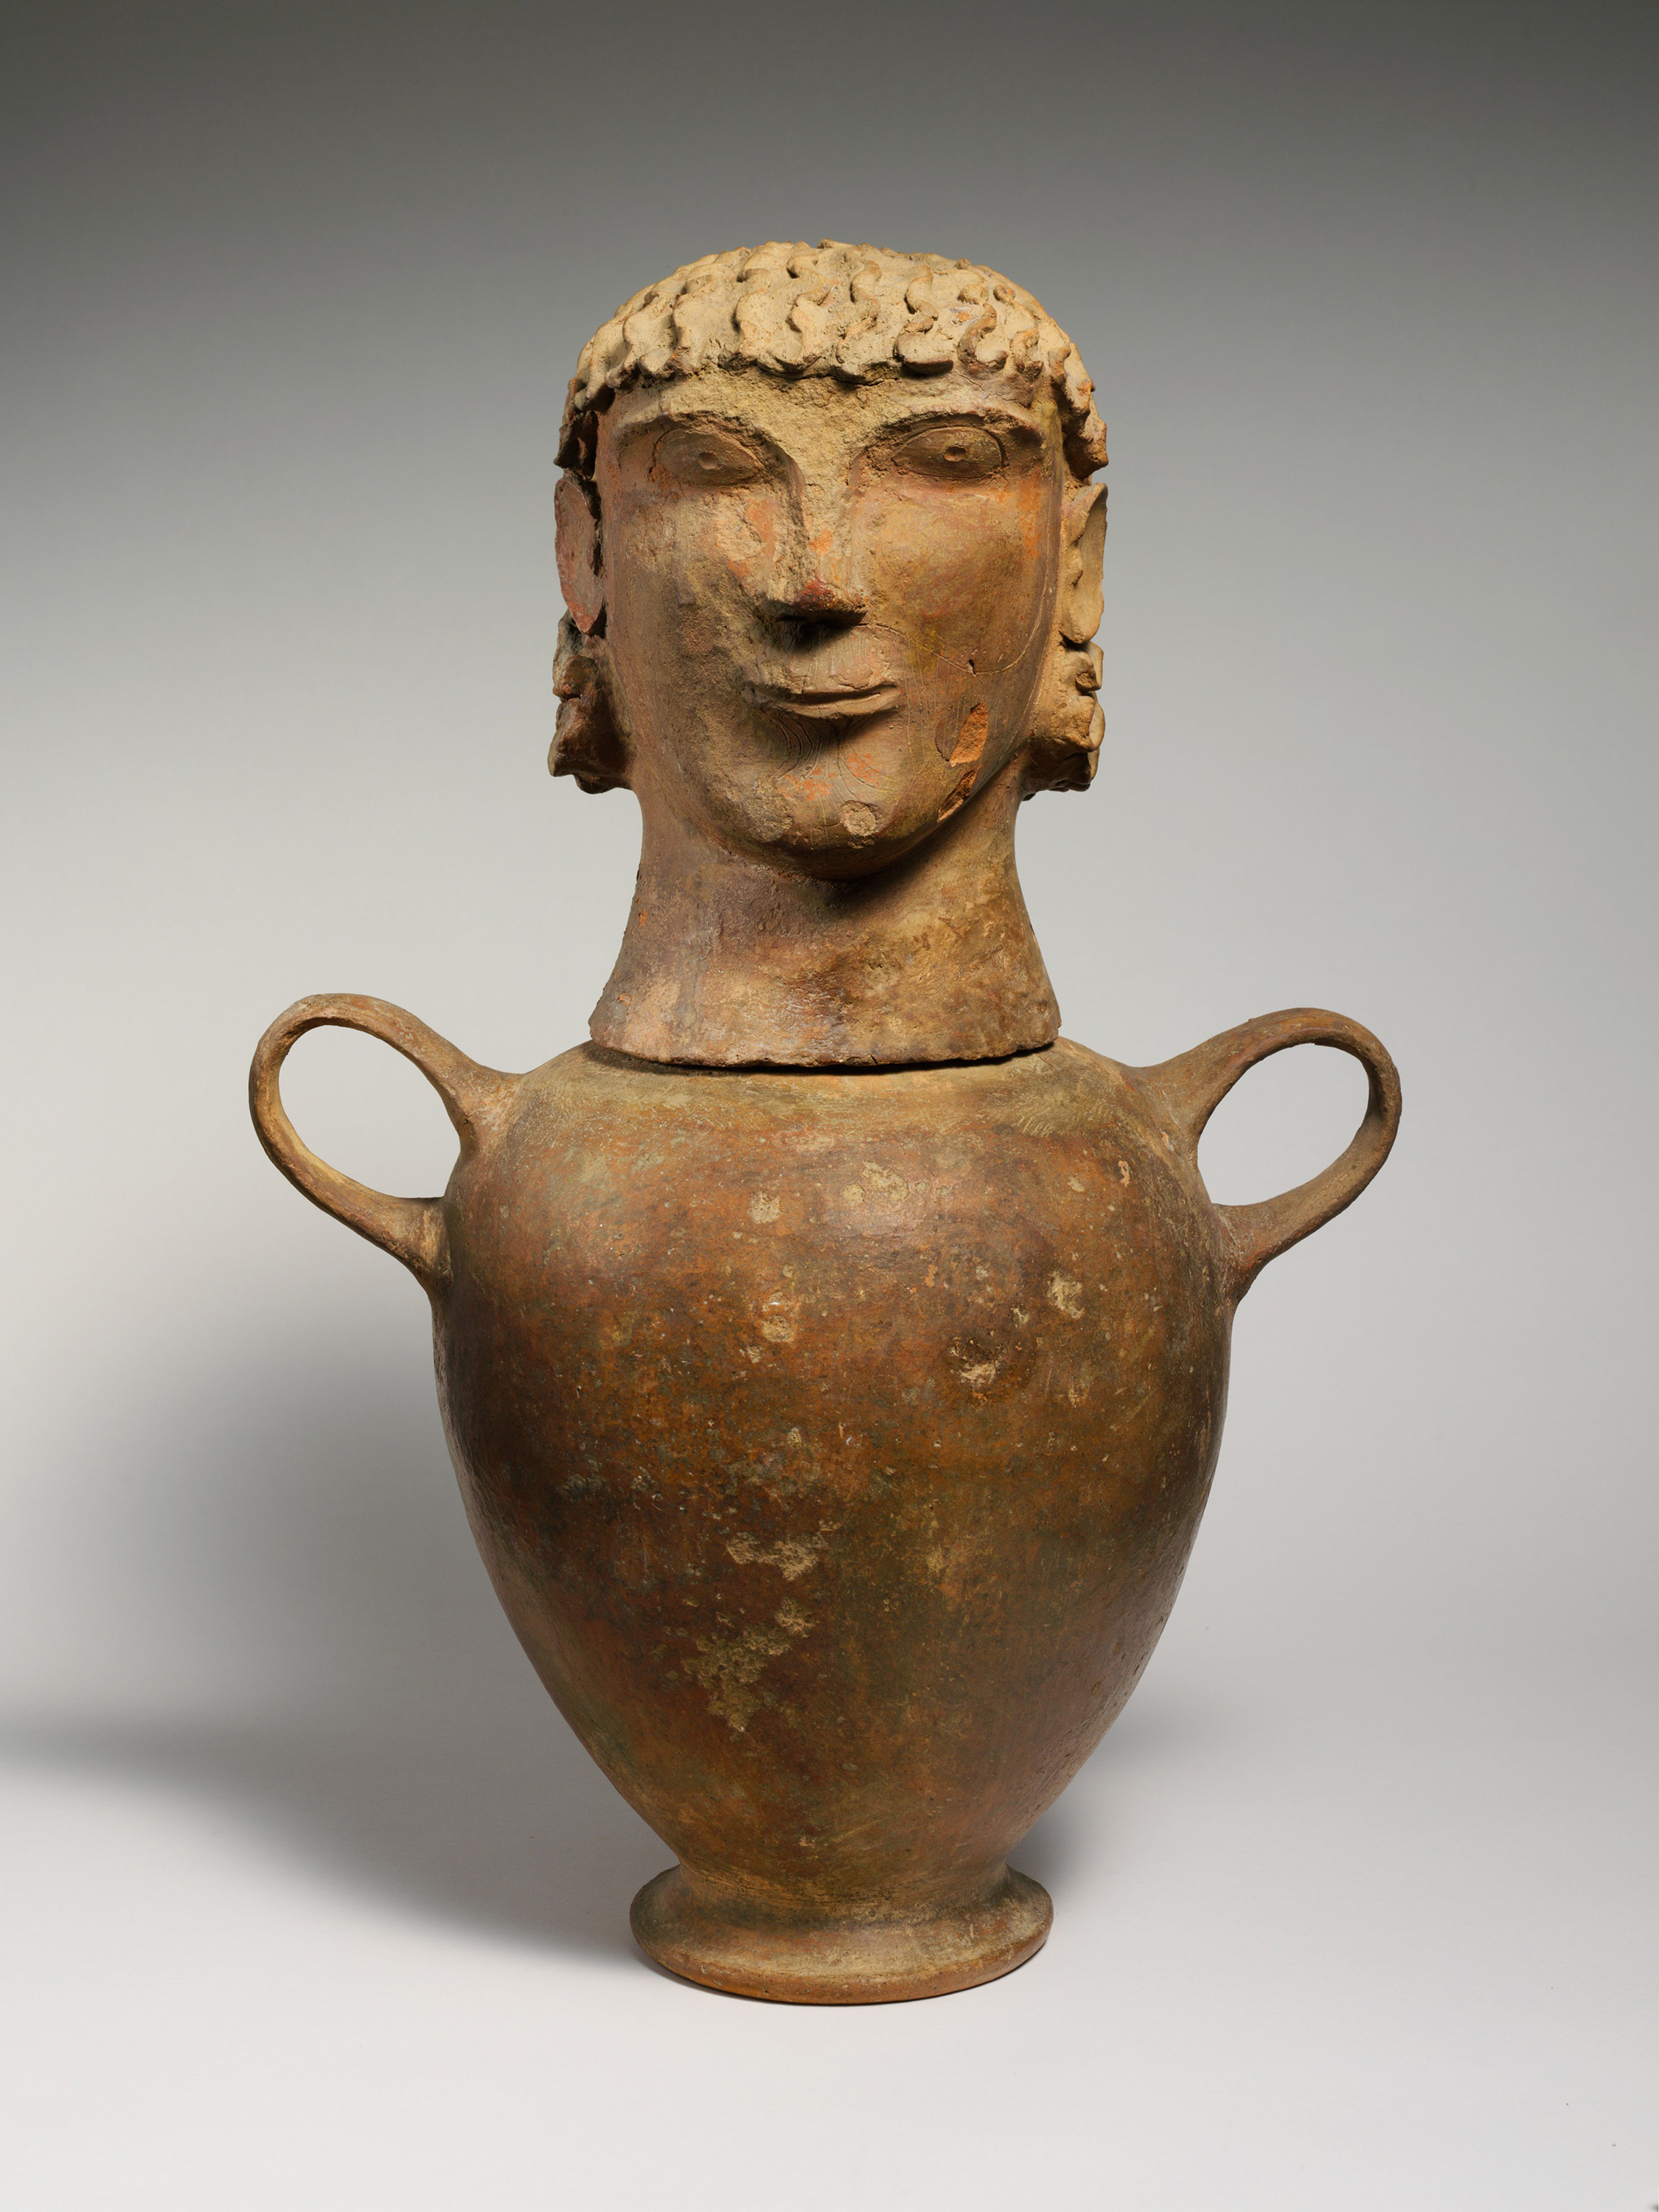 Canopic Urn, 600 BCE — The Etruscans,